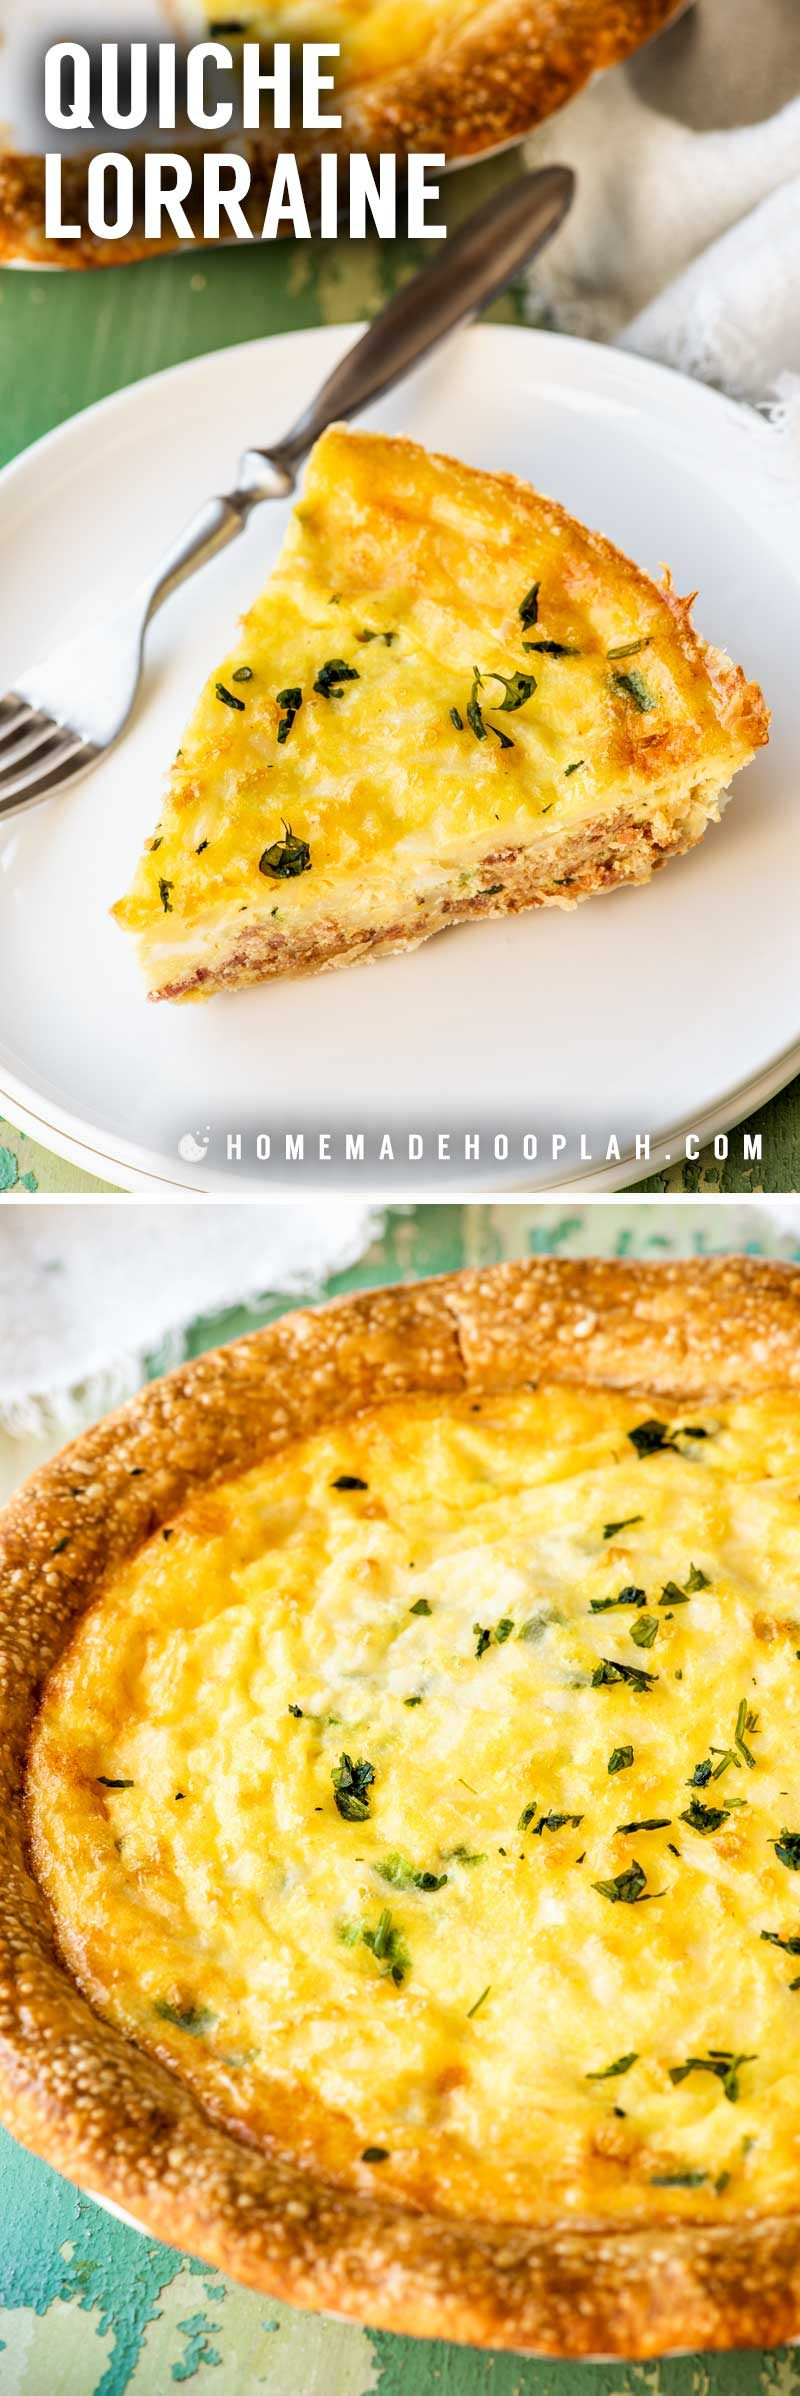 How to make quiche Lorraine from scratch.